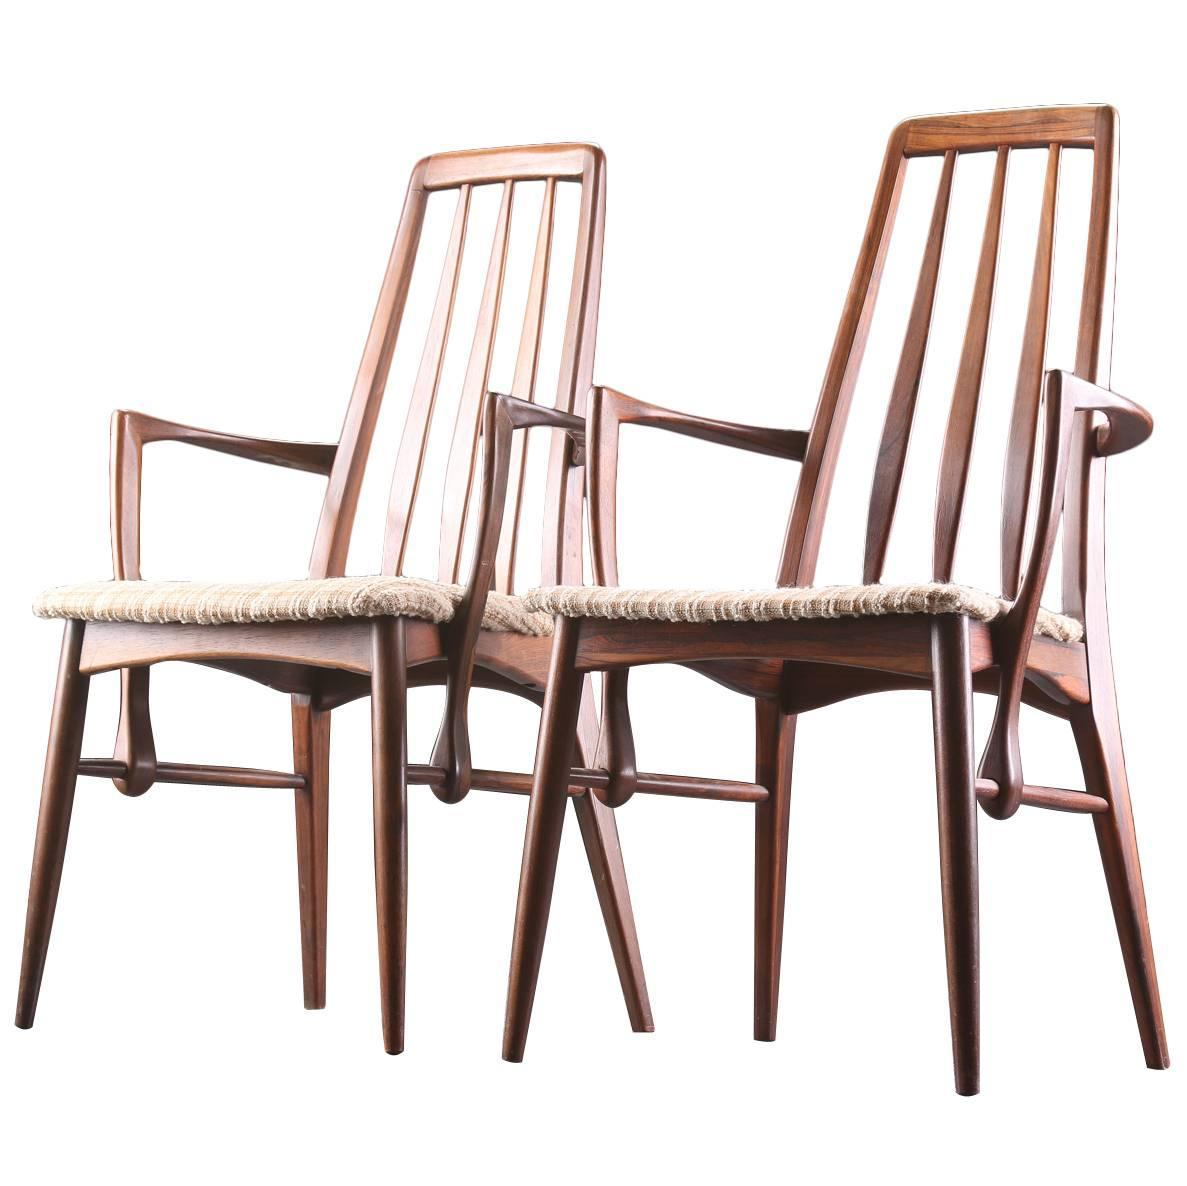 Pair Of Niels Koefoed Rosewood Dining Chairs With Arms For